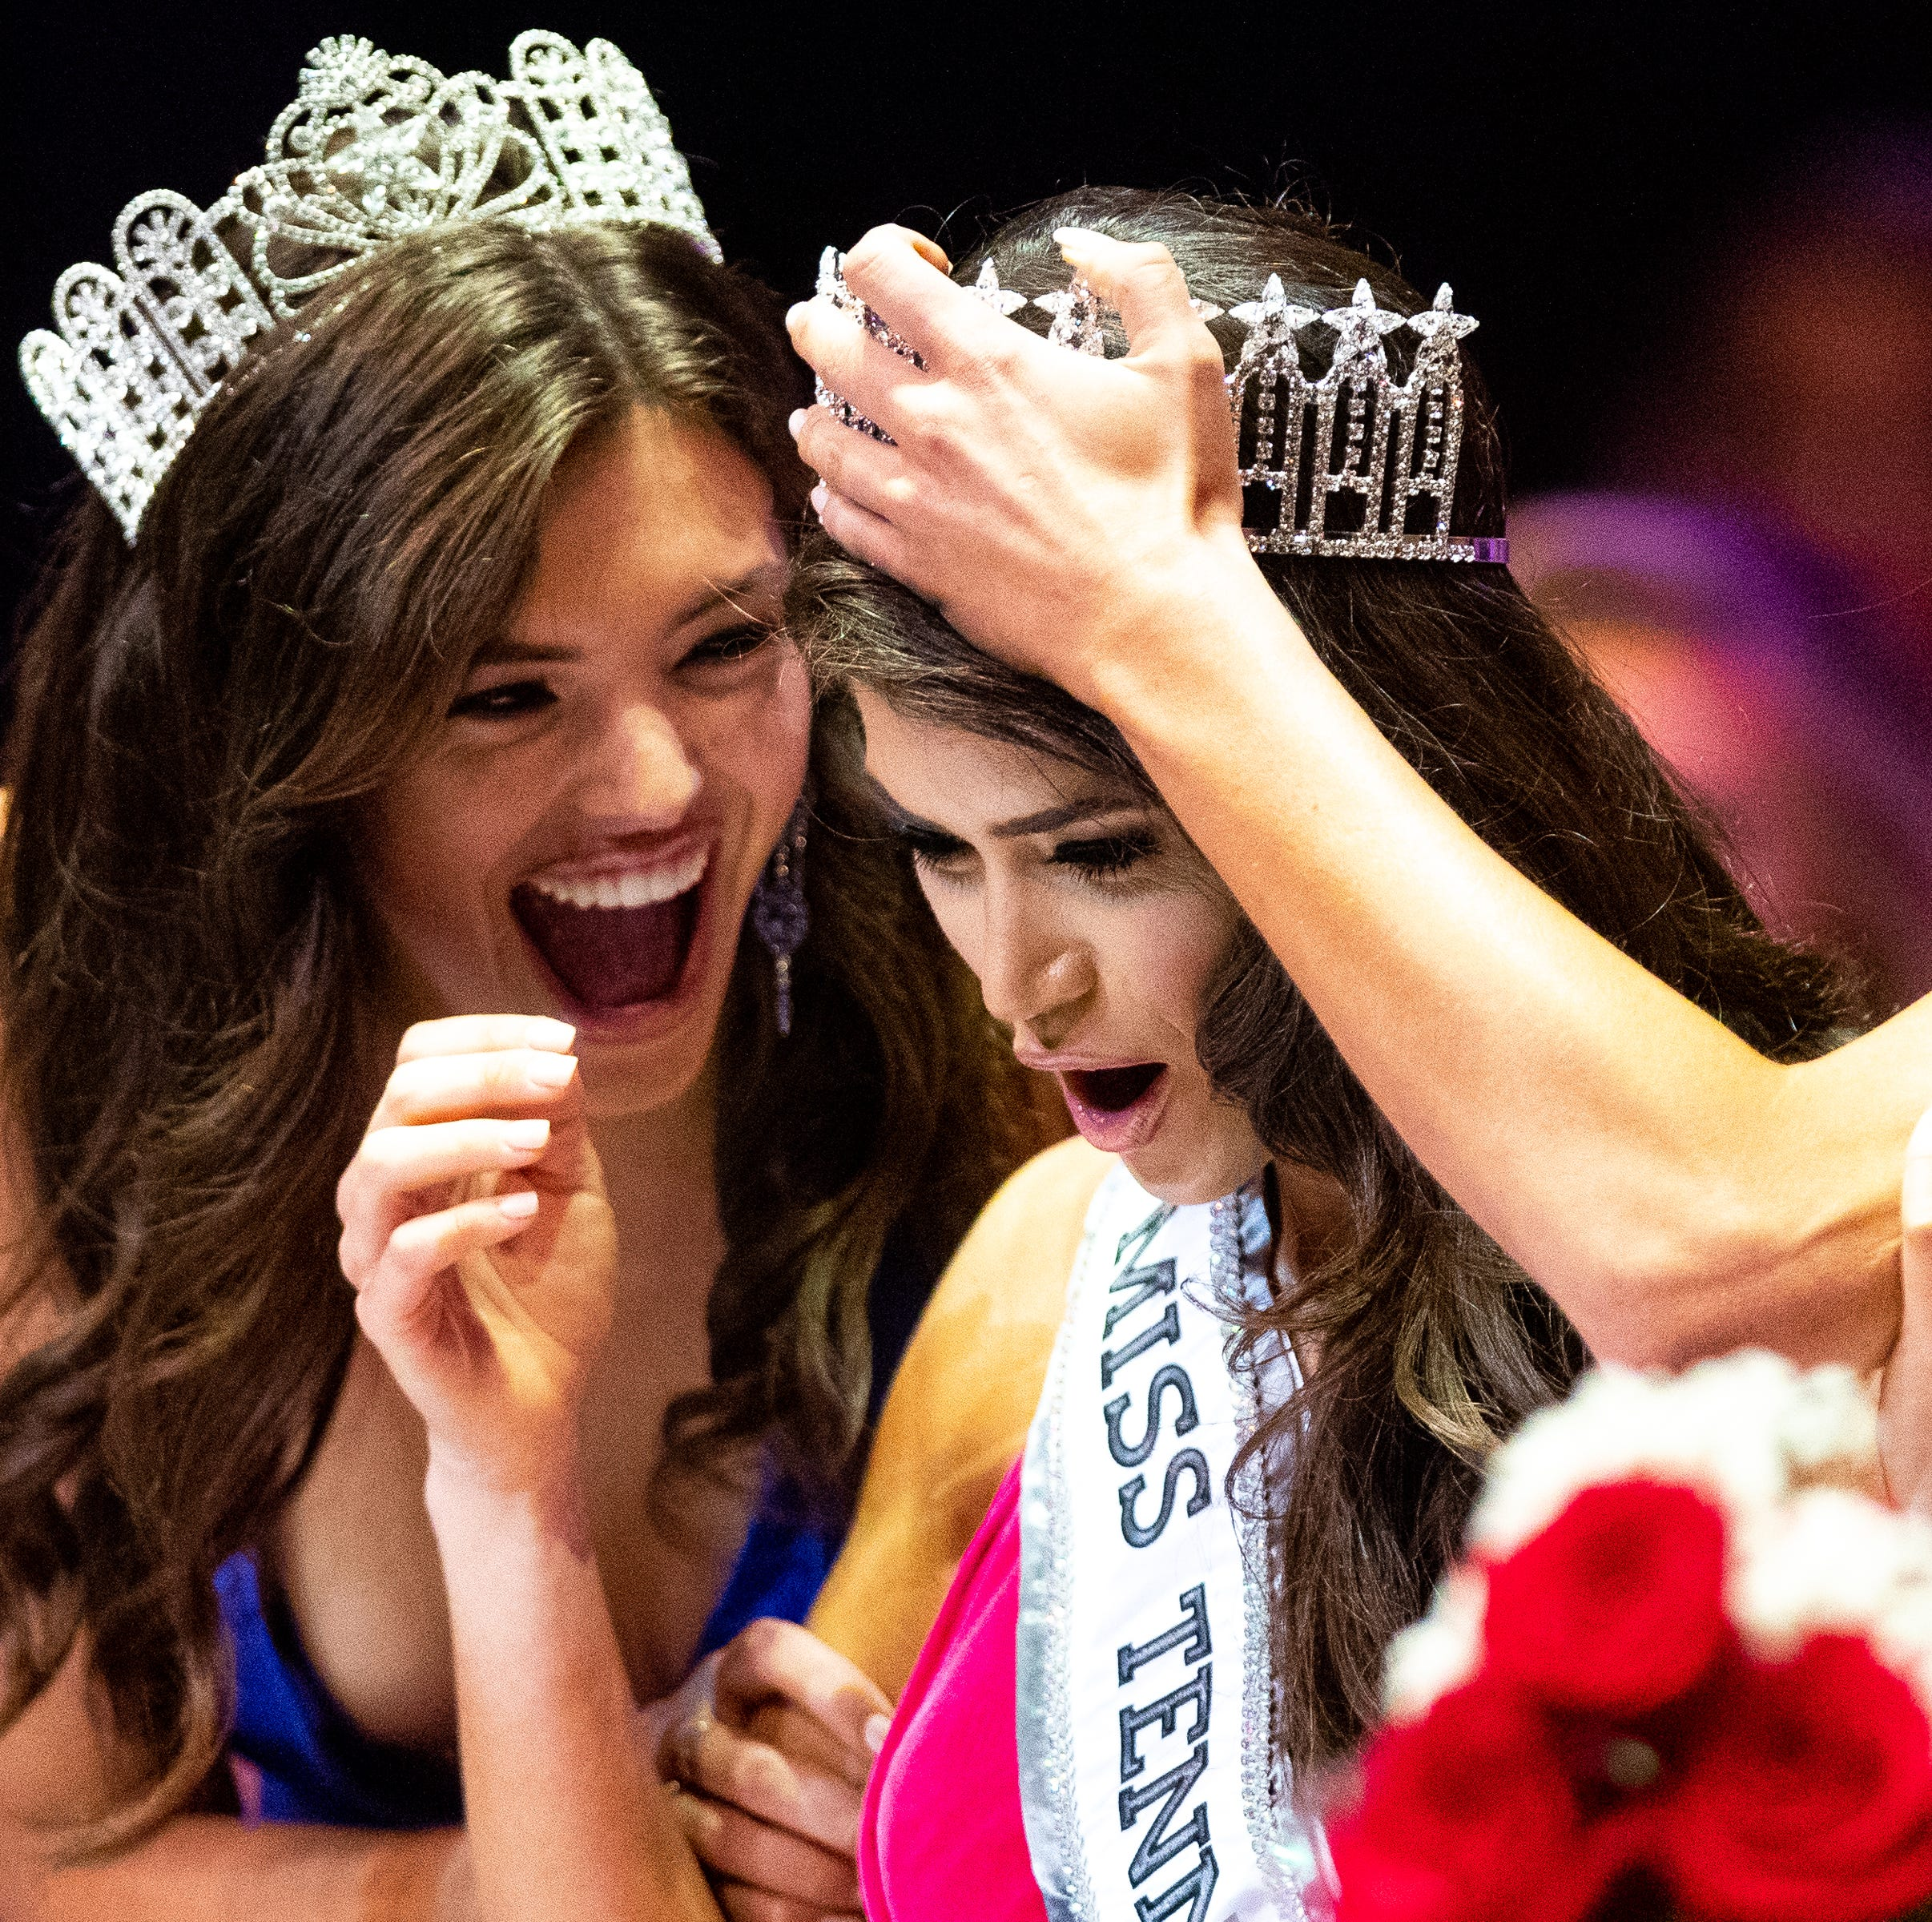 Knoxville native Savana Hodge crowned Miss Tennessee USA